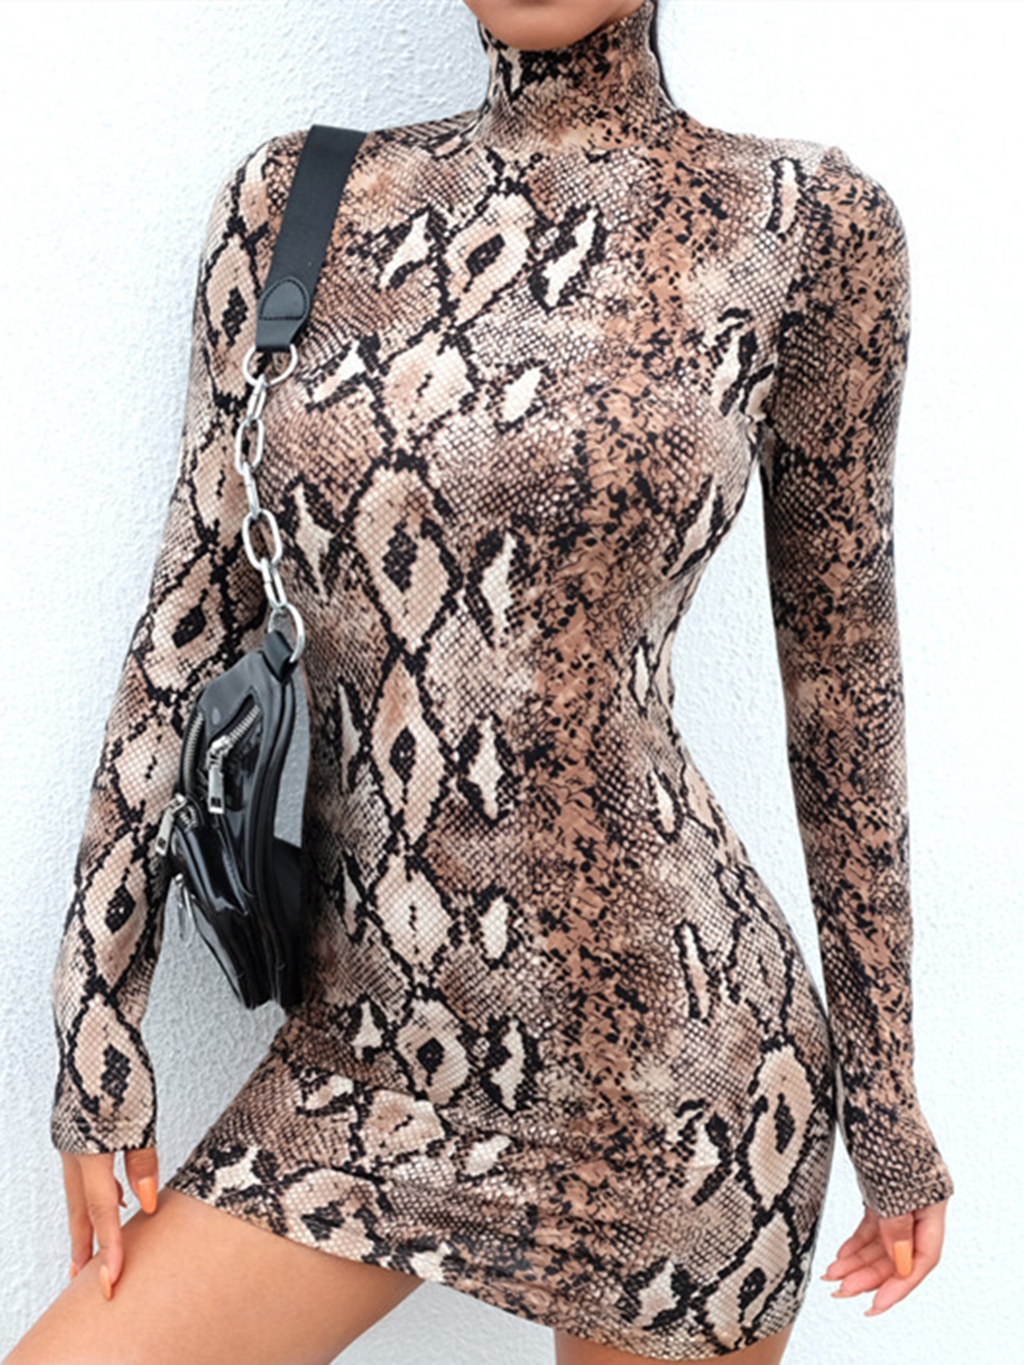 Leopard Sexy Long Sleeve Sheath Work Party Bodycon Dresses Rikkishop